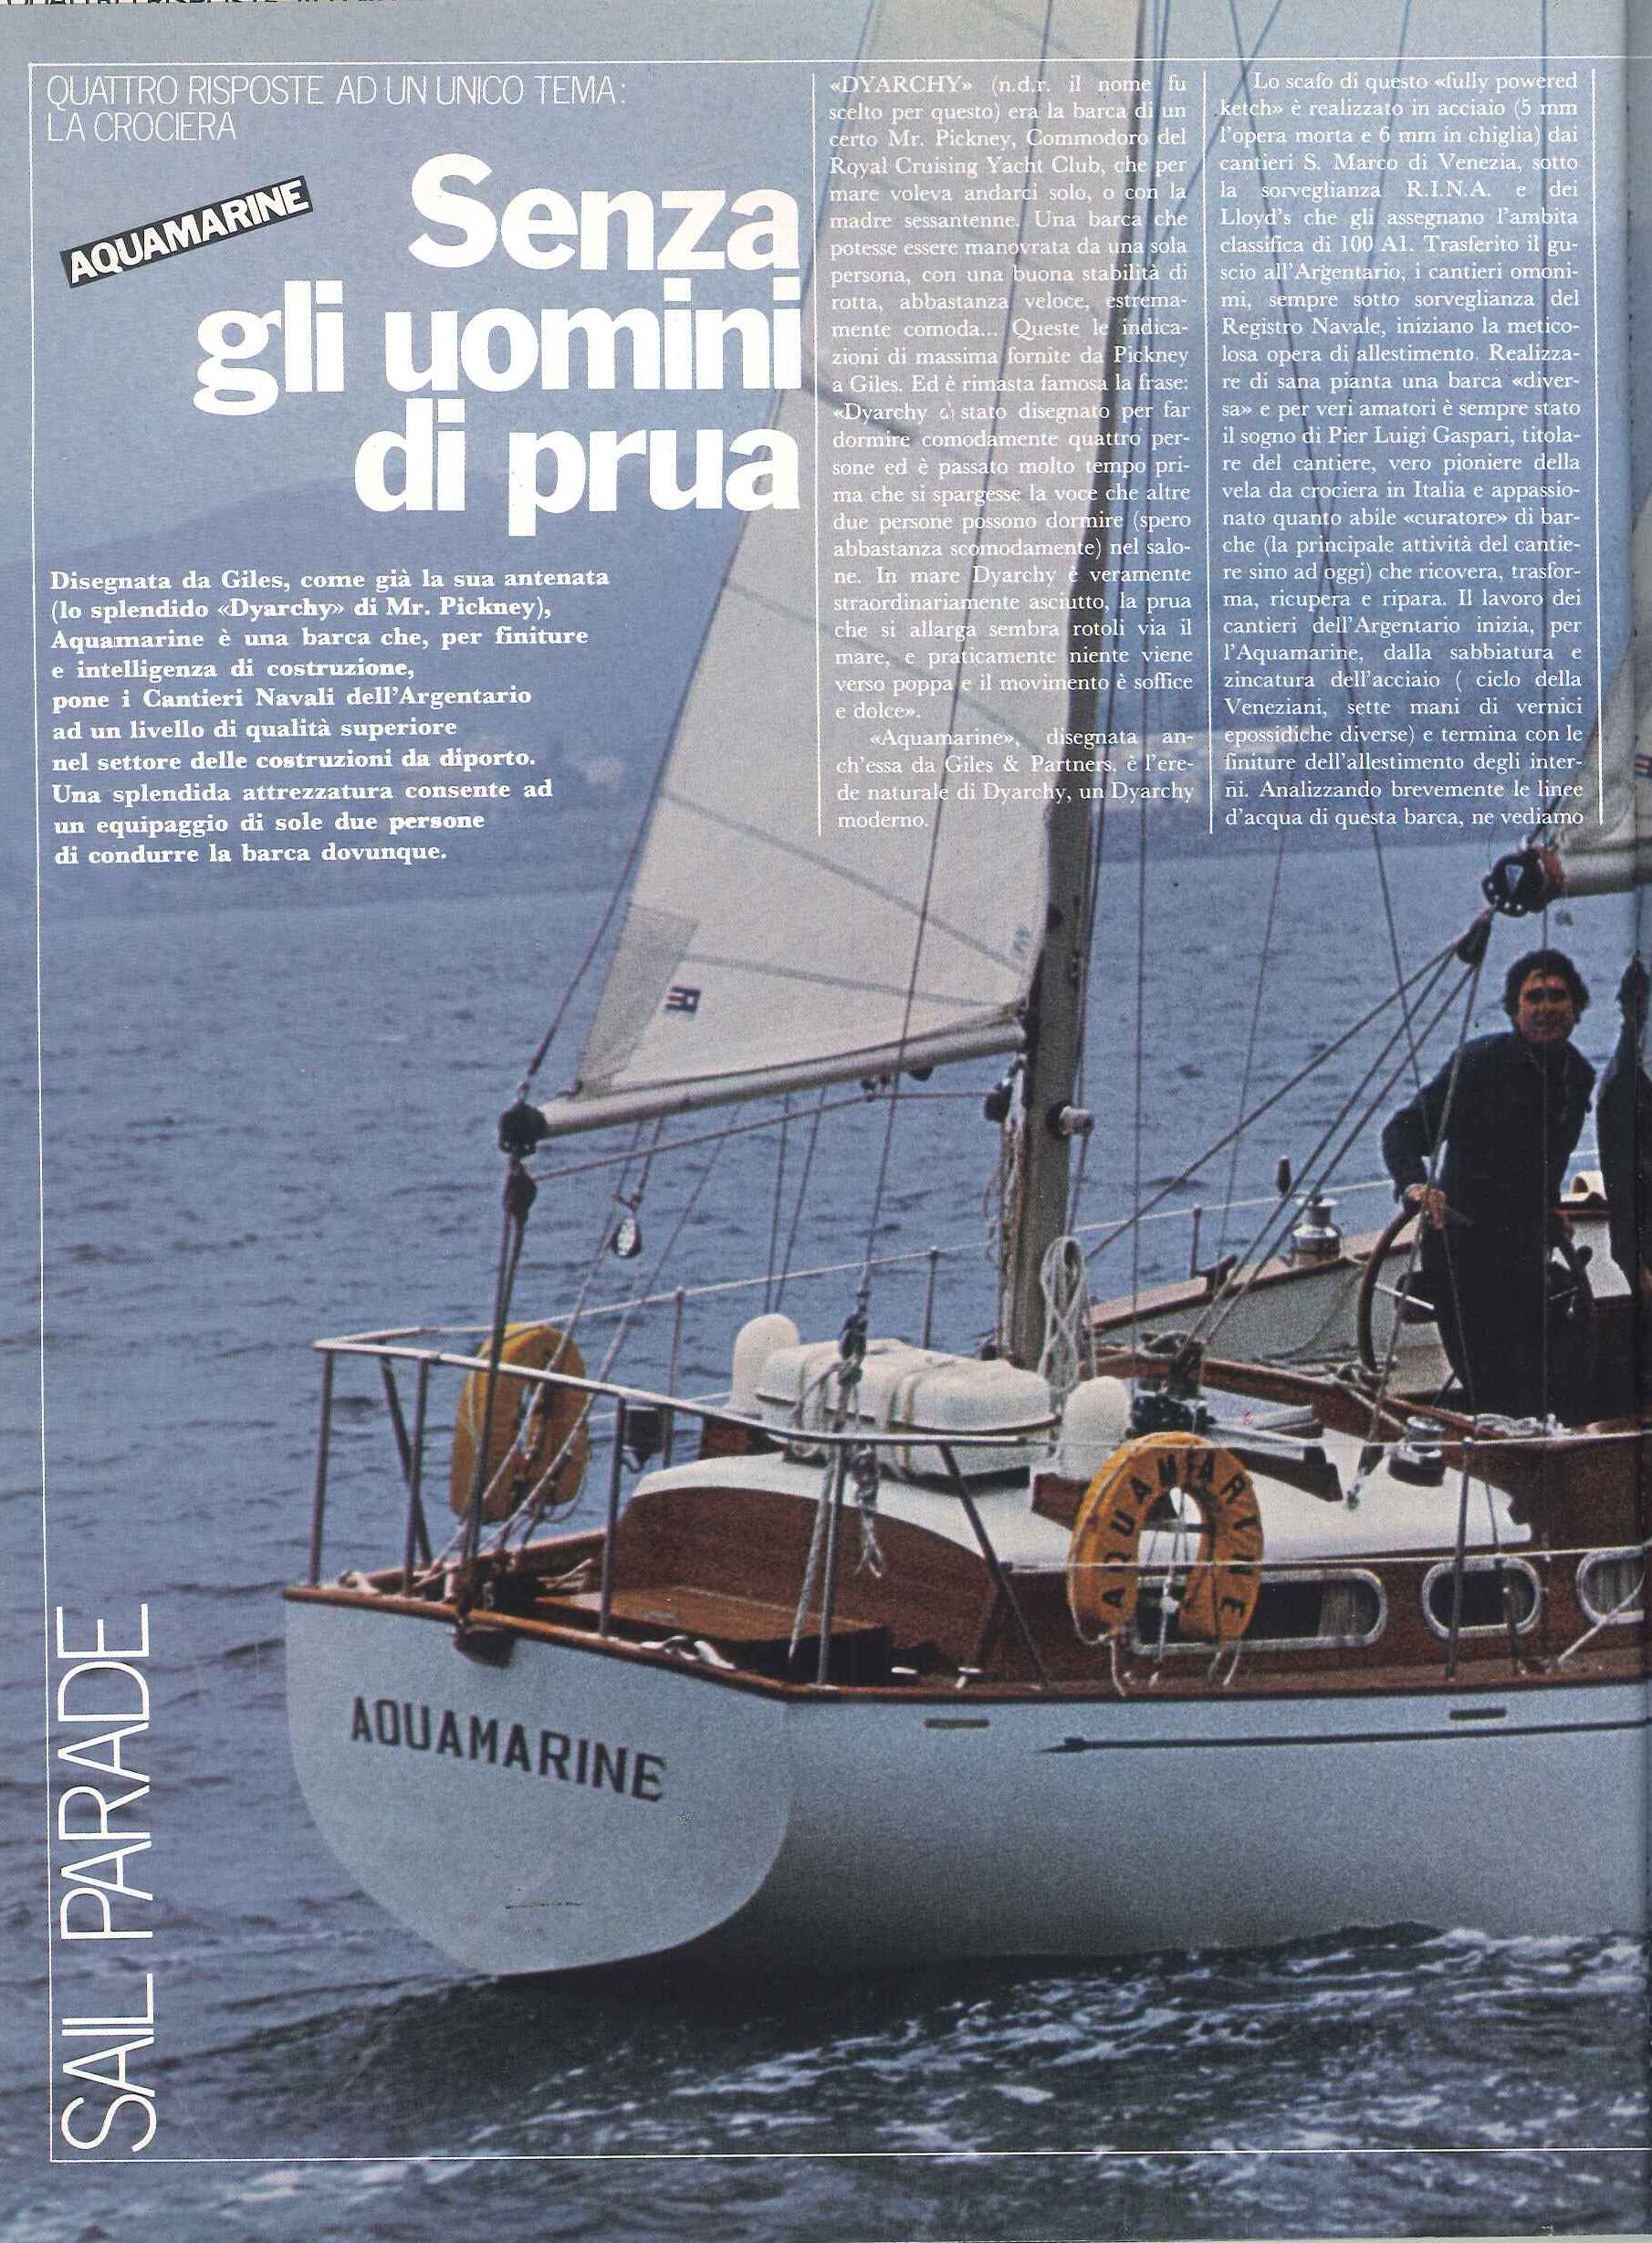 1977 02 PRESS AQUAMARINE UOMO MARE N°19 (01).jpg